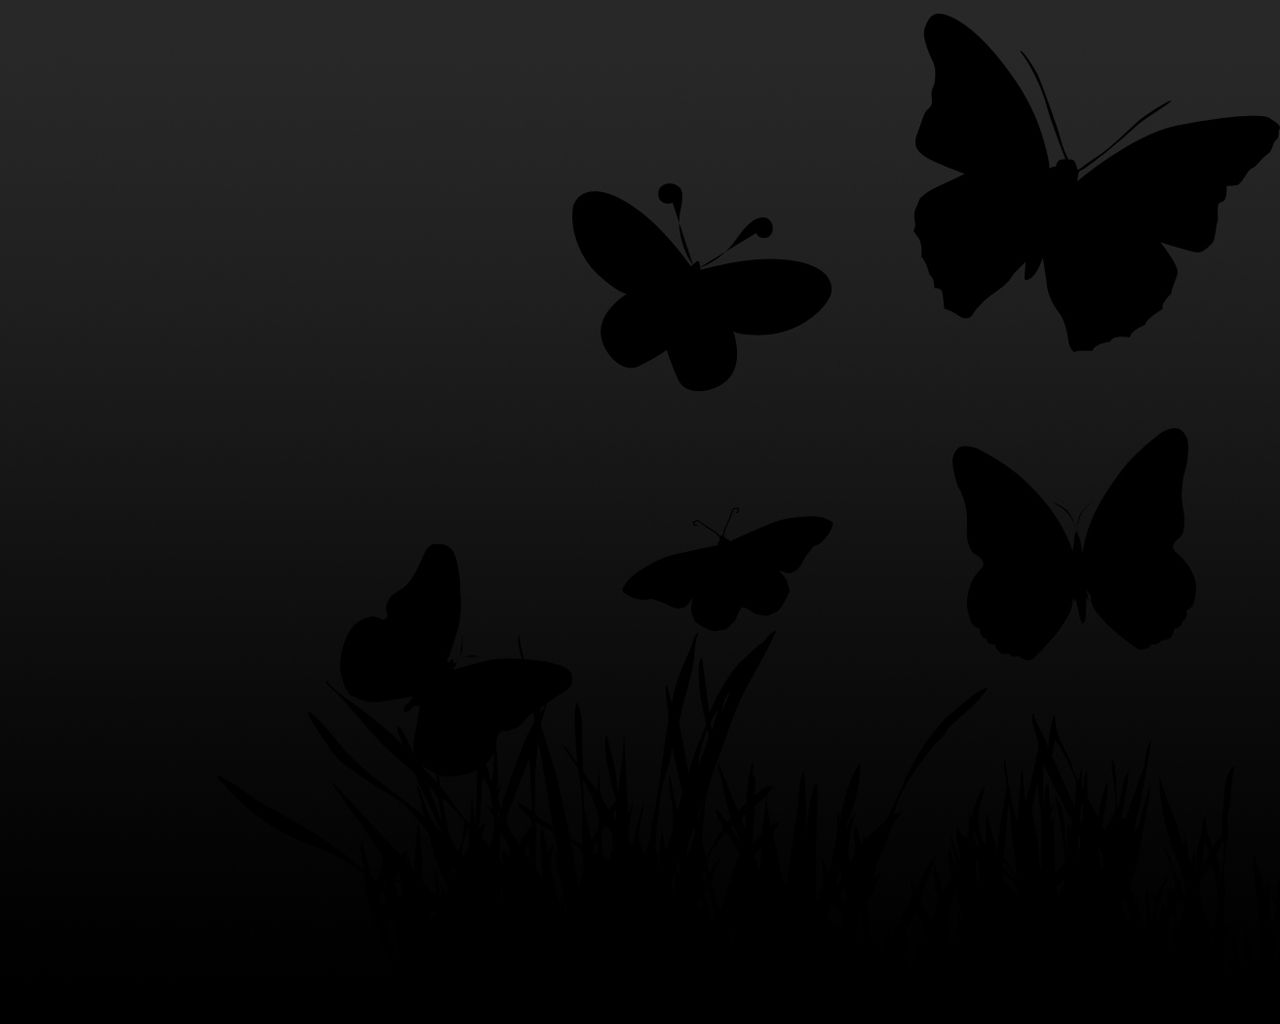 Awesome Black Butterfly Wallpaper Hd Widescreen For Your Pc Computer Butterfly Wallpaper Butterfly Wallpaper Backgrounds Black Wallpaper